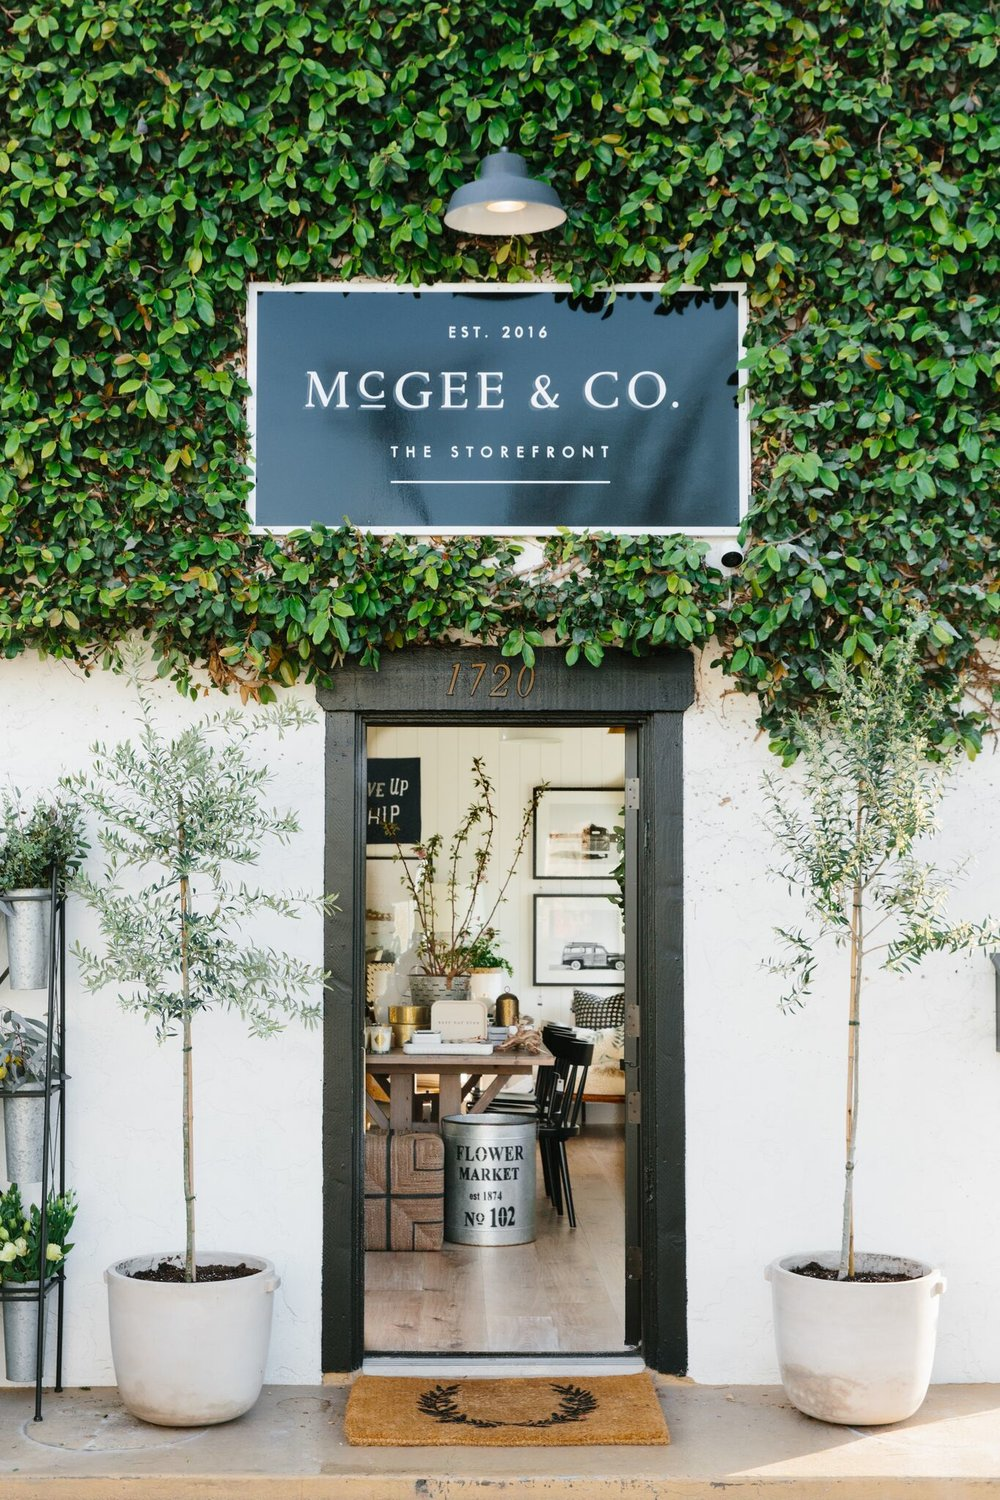 McGee & Co. Storefront